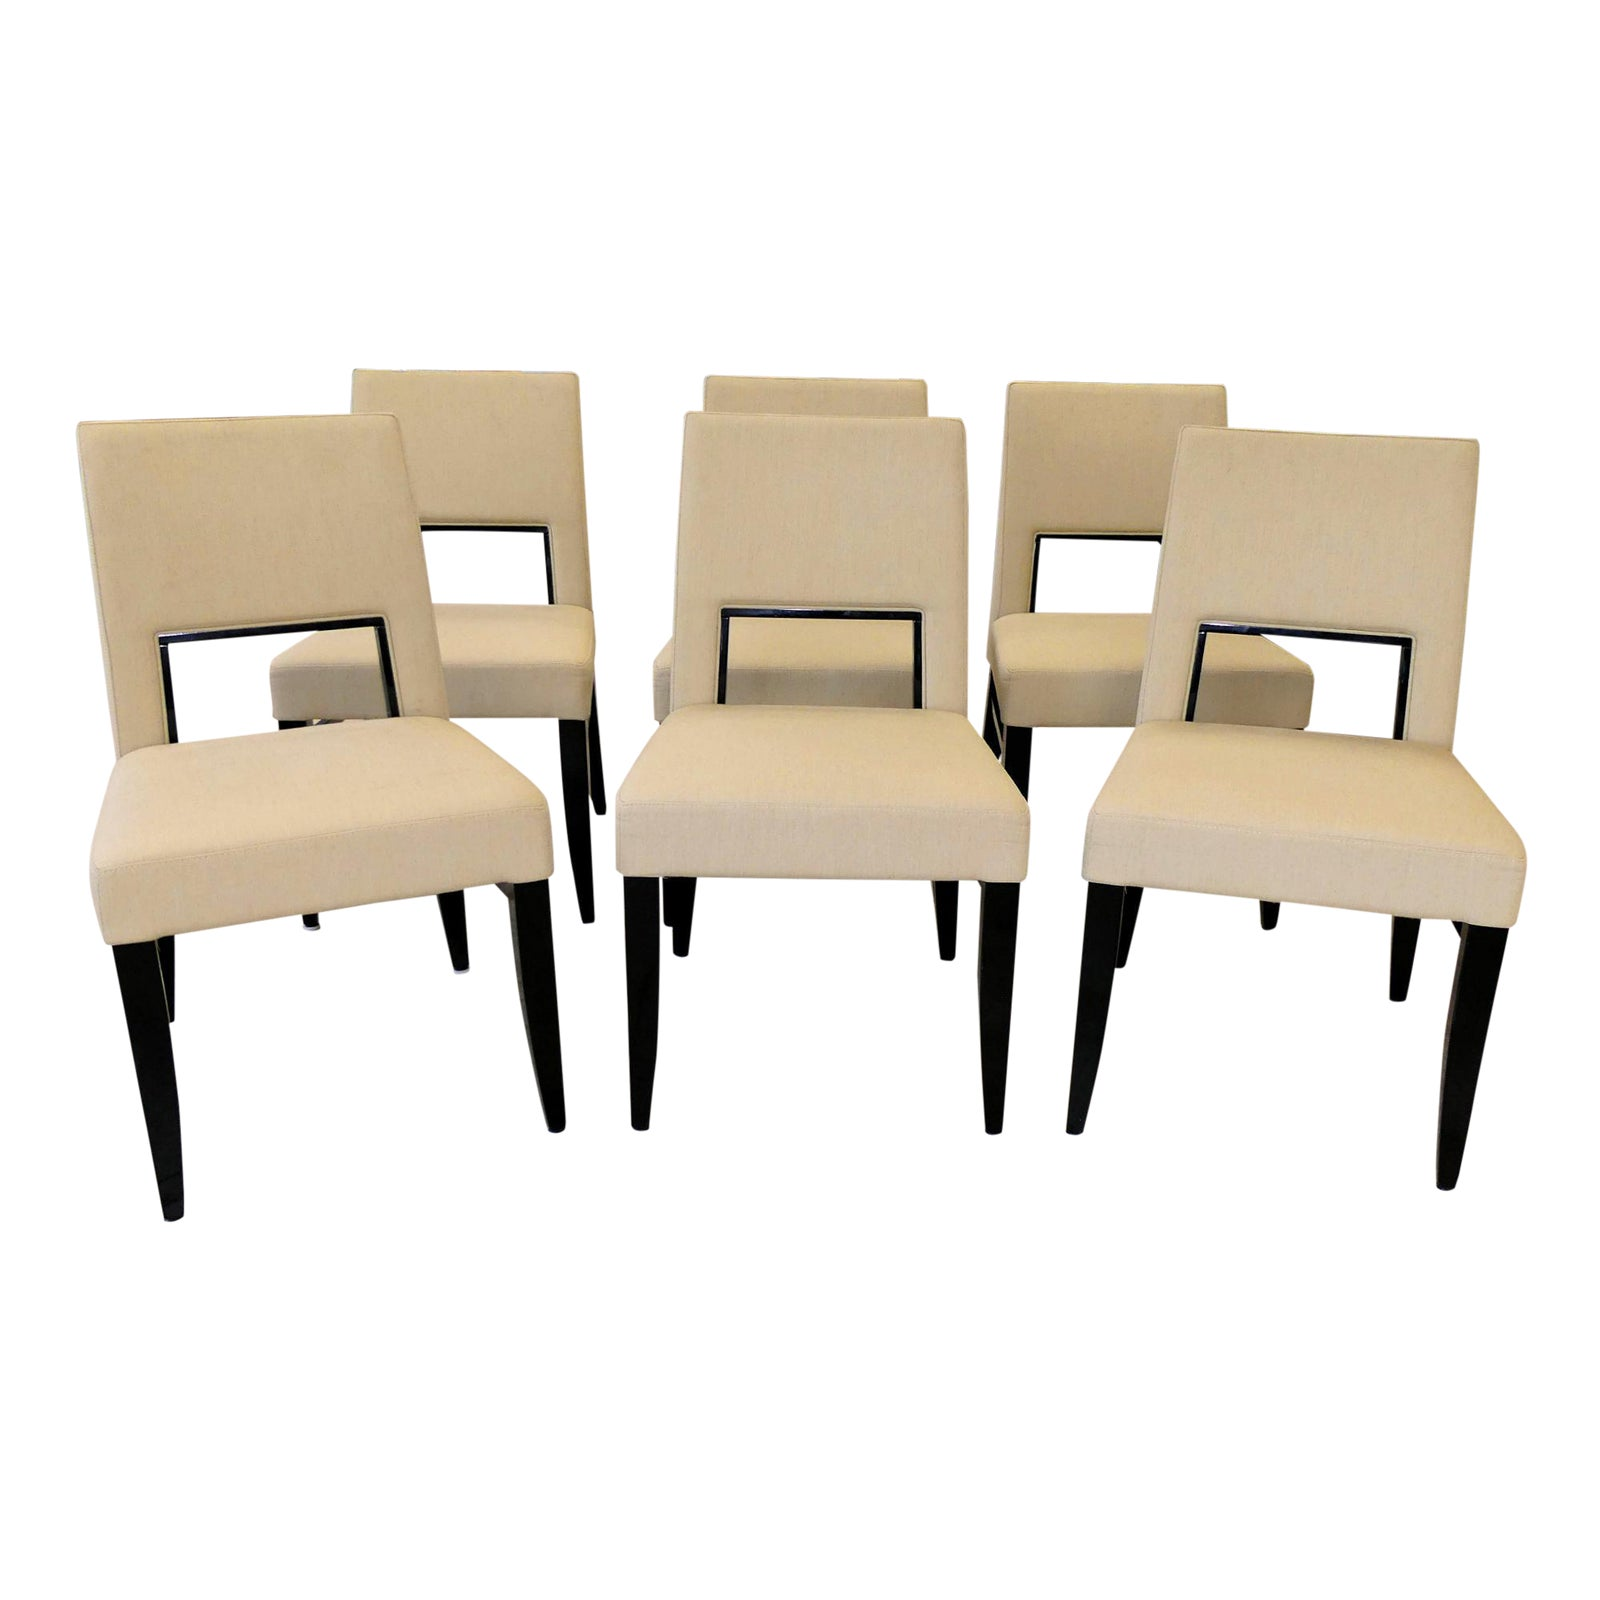 Costantini Pietro Blues Dining Chairs Set of 6